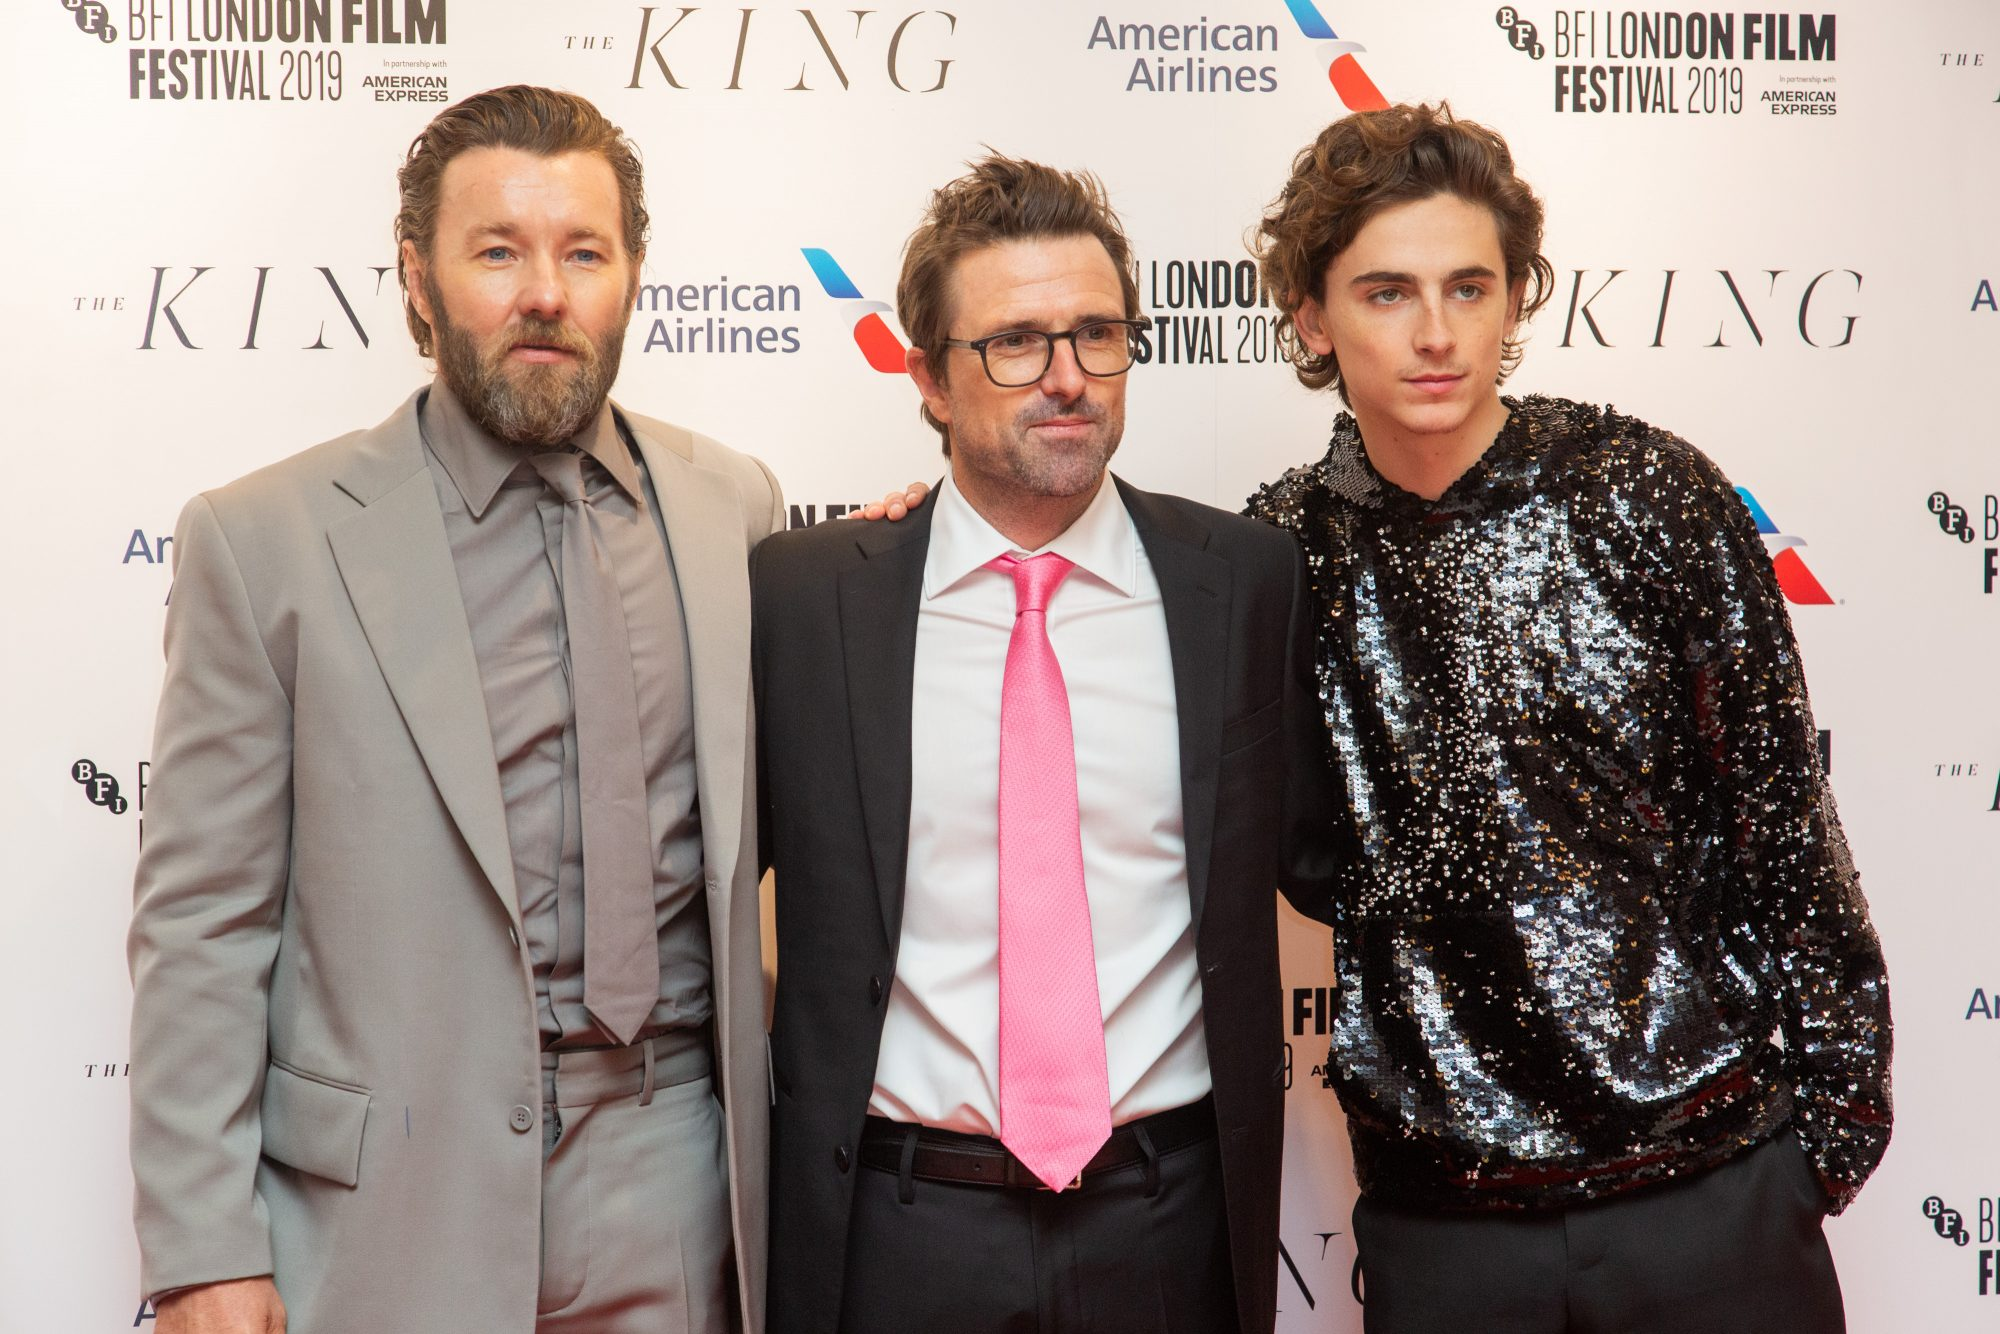 Joel Edgerton, David Michod and Timothee Chalamet at The King UK Premiere during the 63rd BFI London Film Festival at Odeon Luxe Leicester Square on 3rd October 2019.  Photos: Netflix